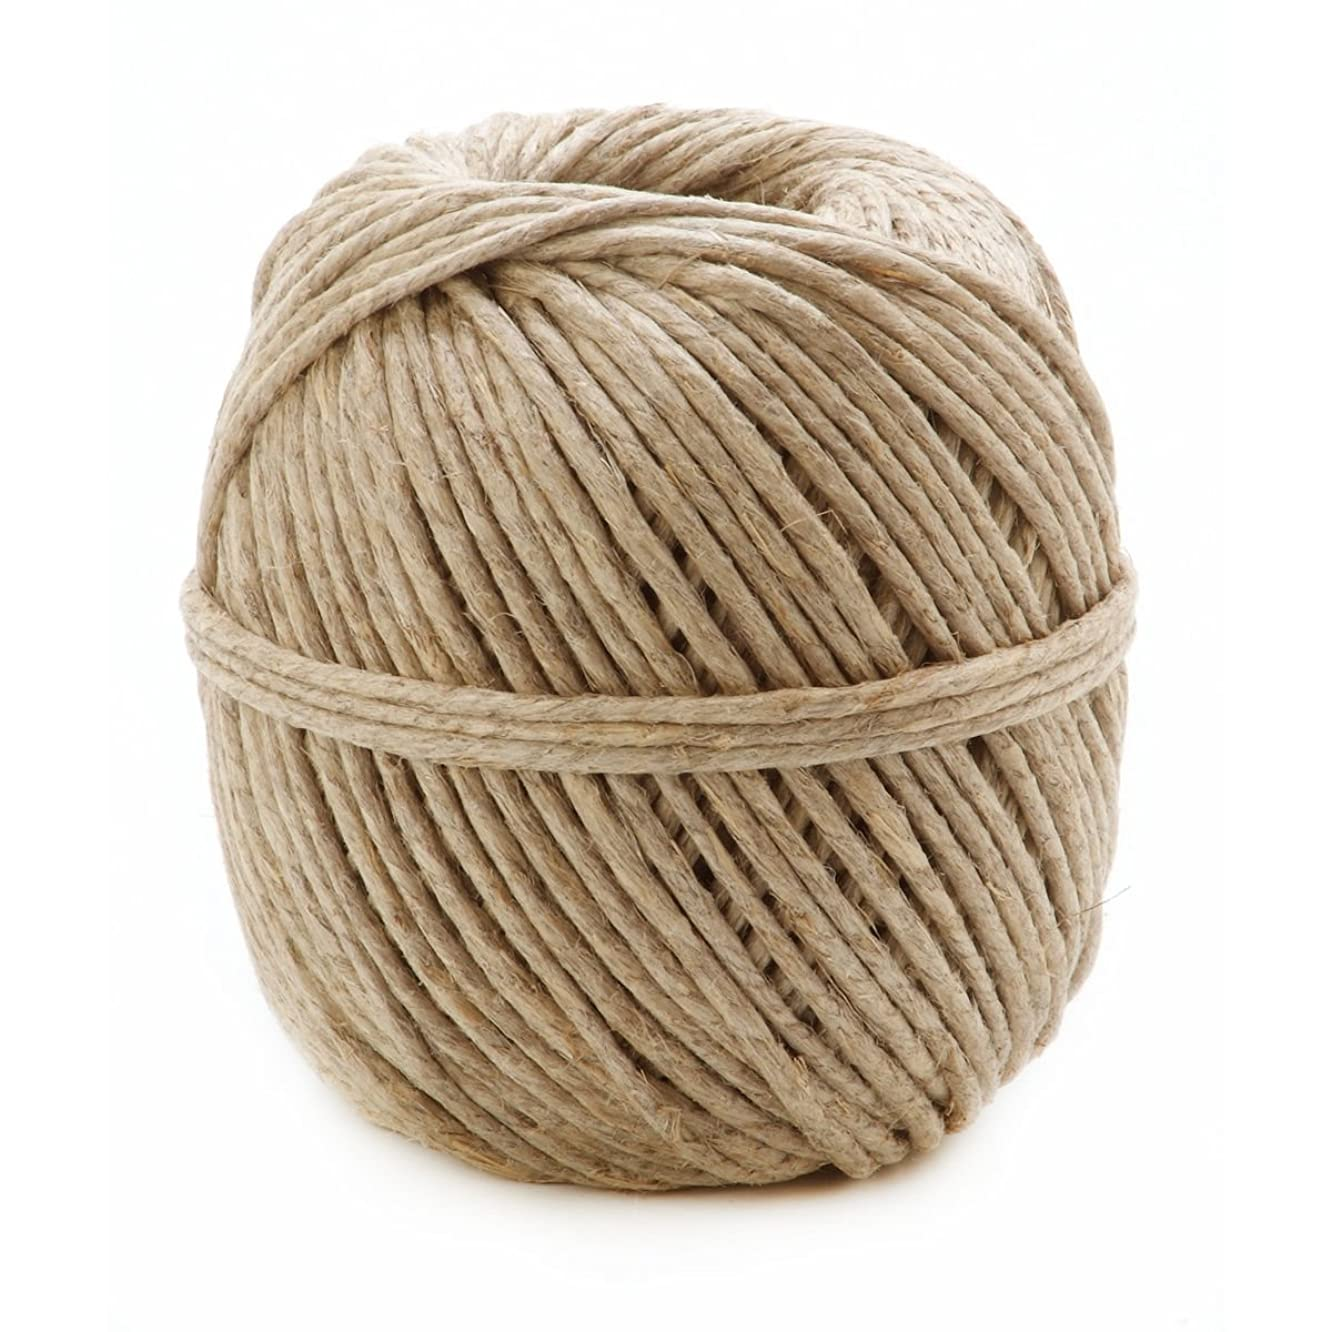 Darice Cord Hemp Ball Natural 180# 200ft